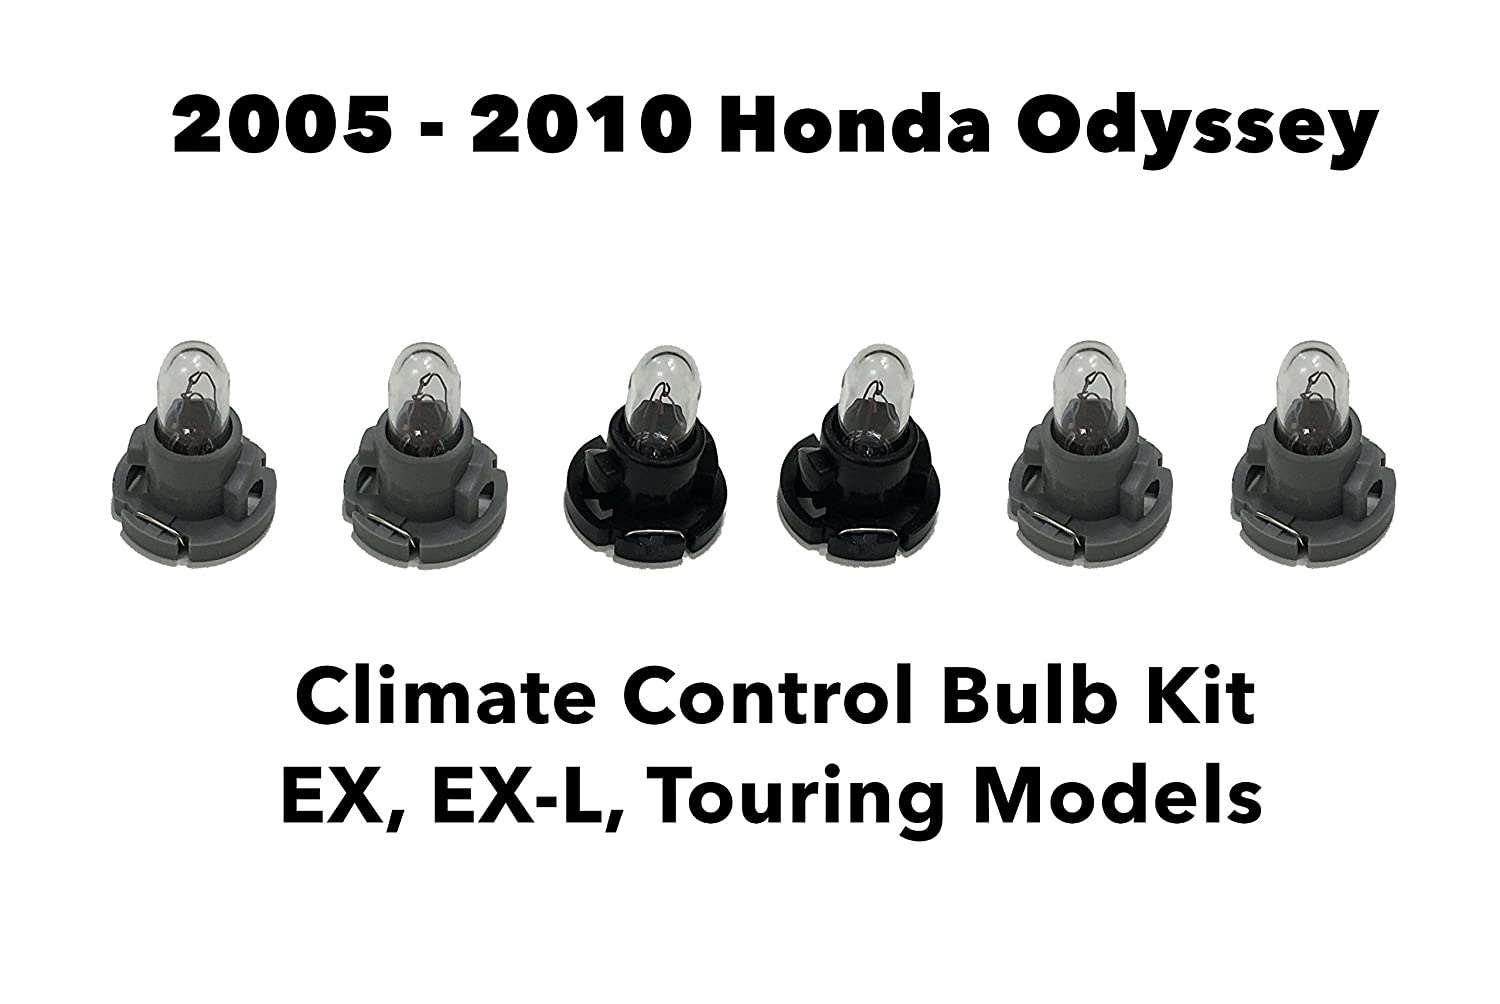 Genuine Oem Honda Odyssey Set Of 6 Bulbs Heater A C 2007 Element Ex Fuse Box Layout Climate Control Light Bulb Kit L Touring 2005 2010 Automotive